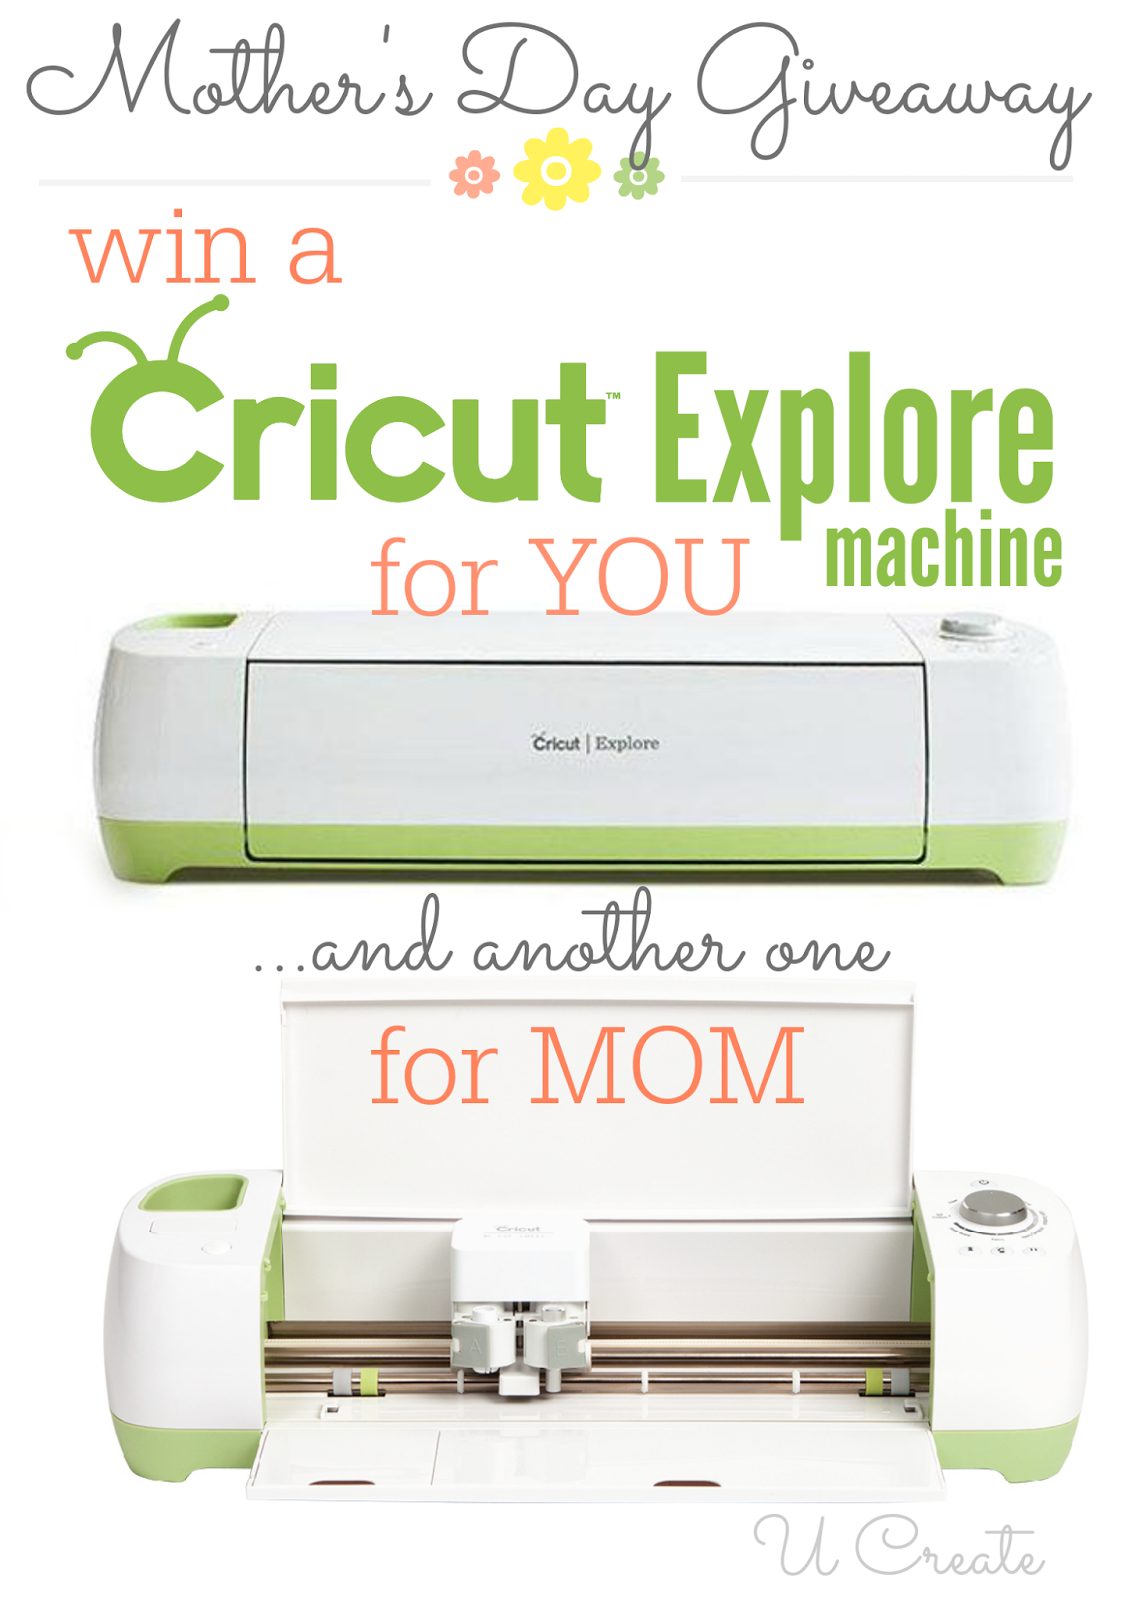 Mother's Day Giveaway: Cricut Explore Machines (One for You